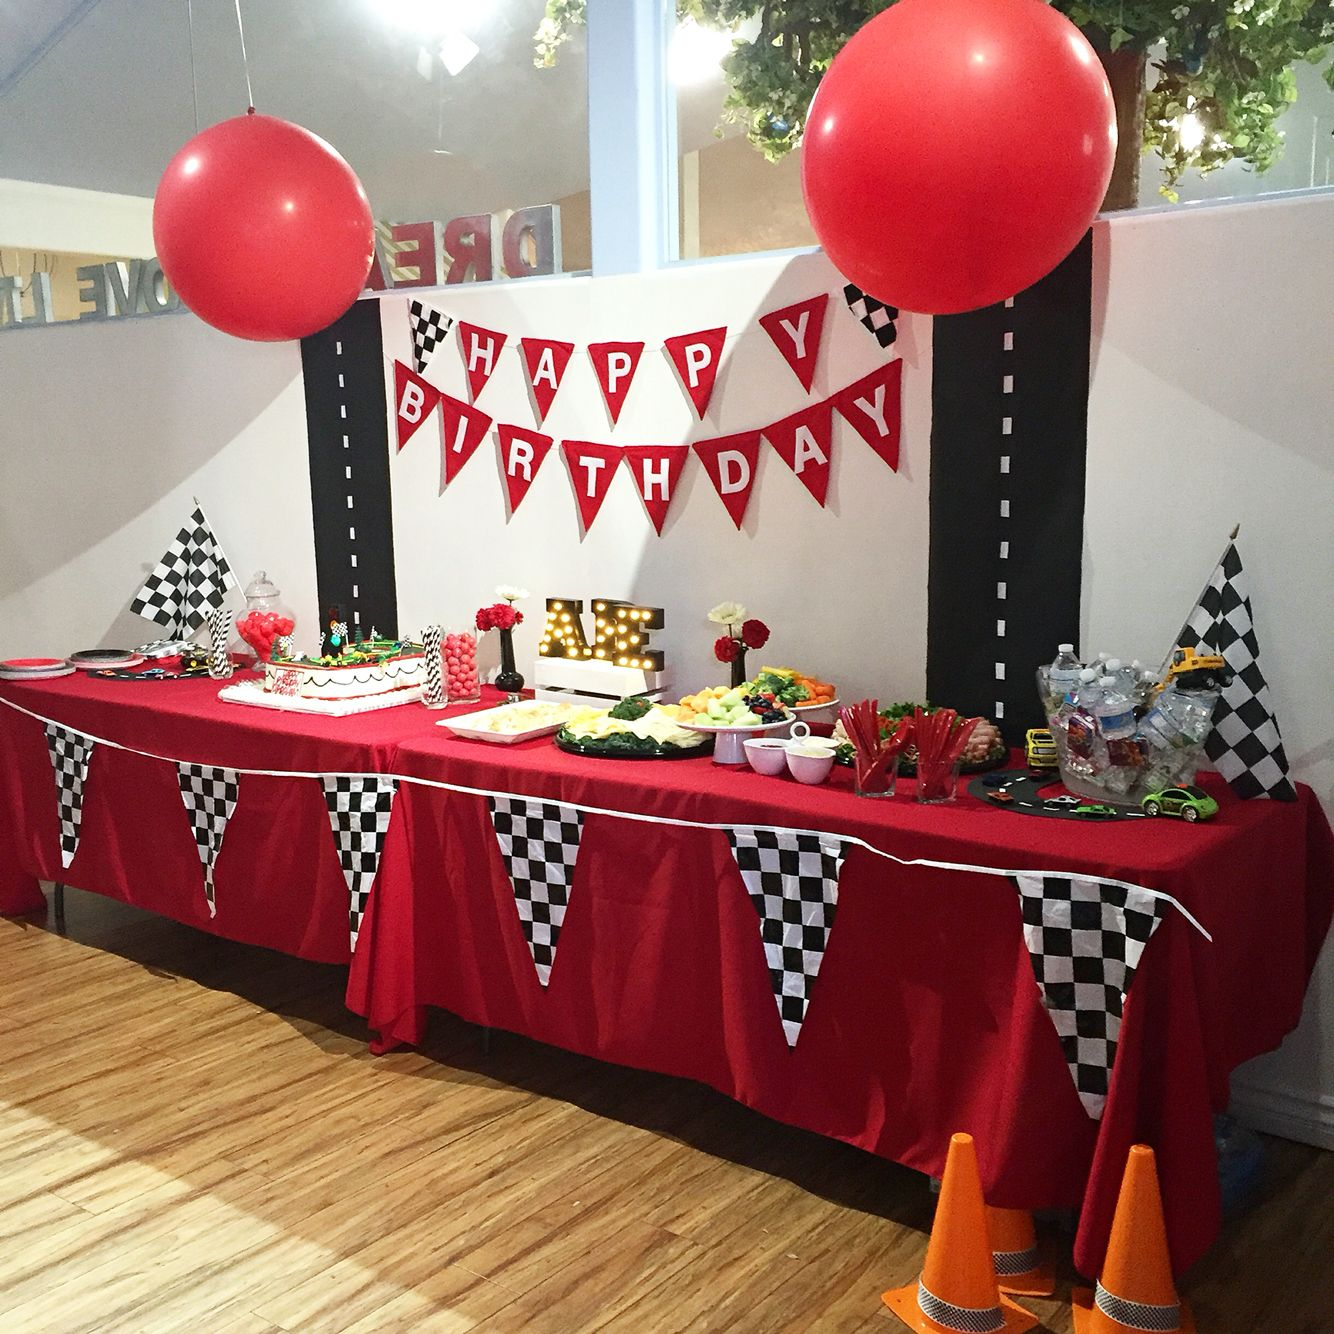 Cars party table decor disney cars theme pinterest Table decoration ideas for parties